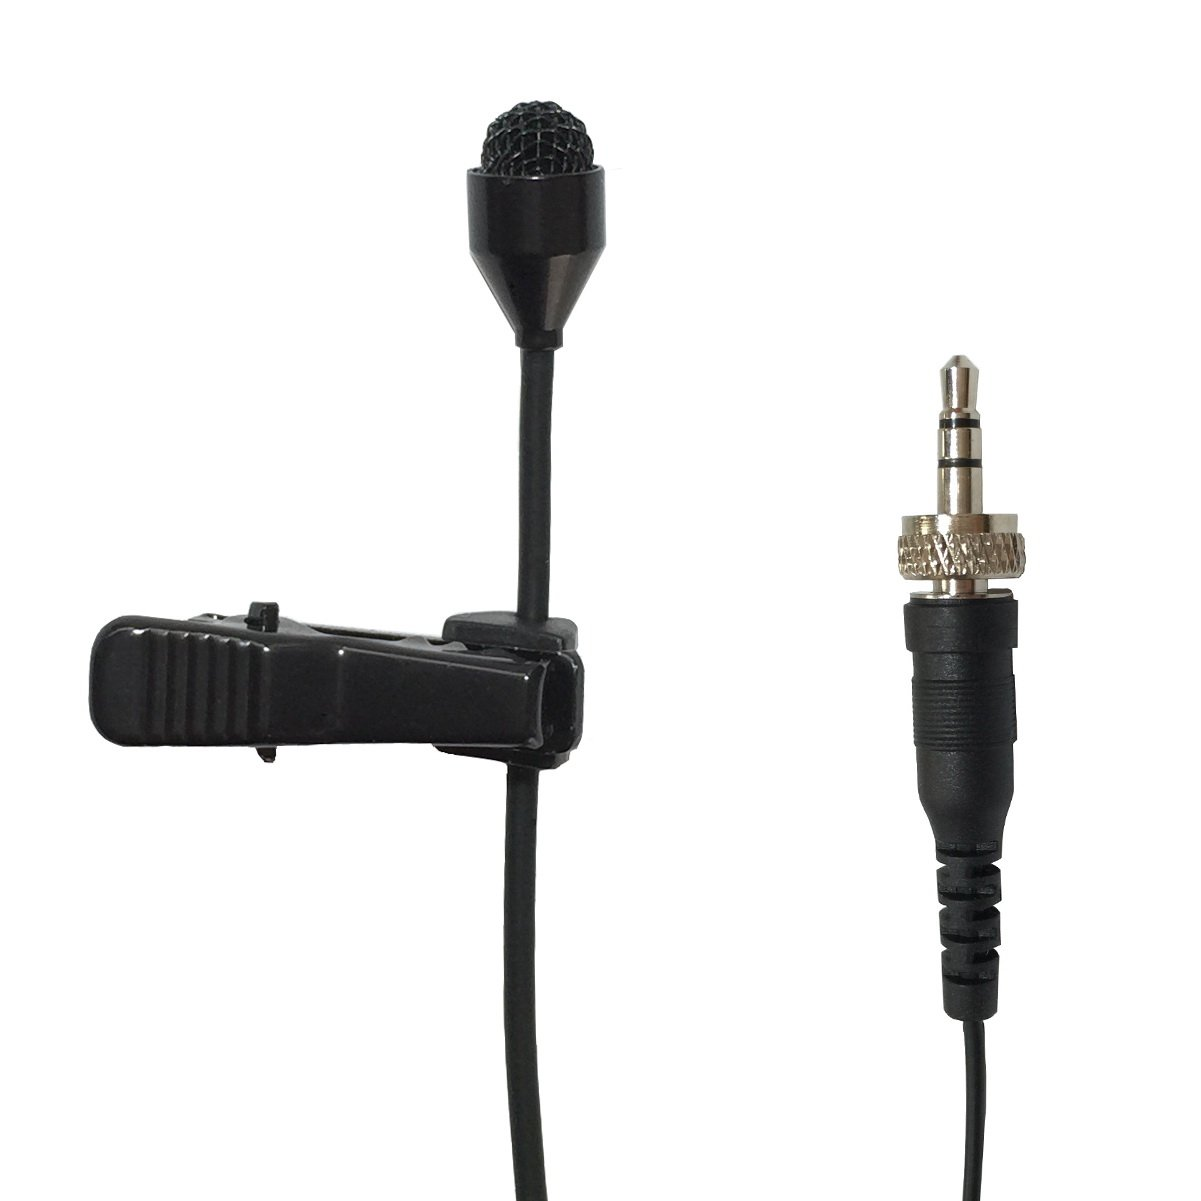 Pro Lavalier Lapel Microphone Microdot 6016 For SENNHEISER Wireless Transmitter - Omni-directional Condenser Mic MD6016